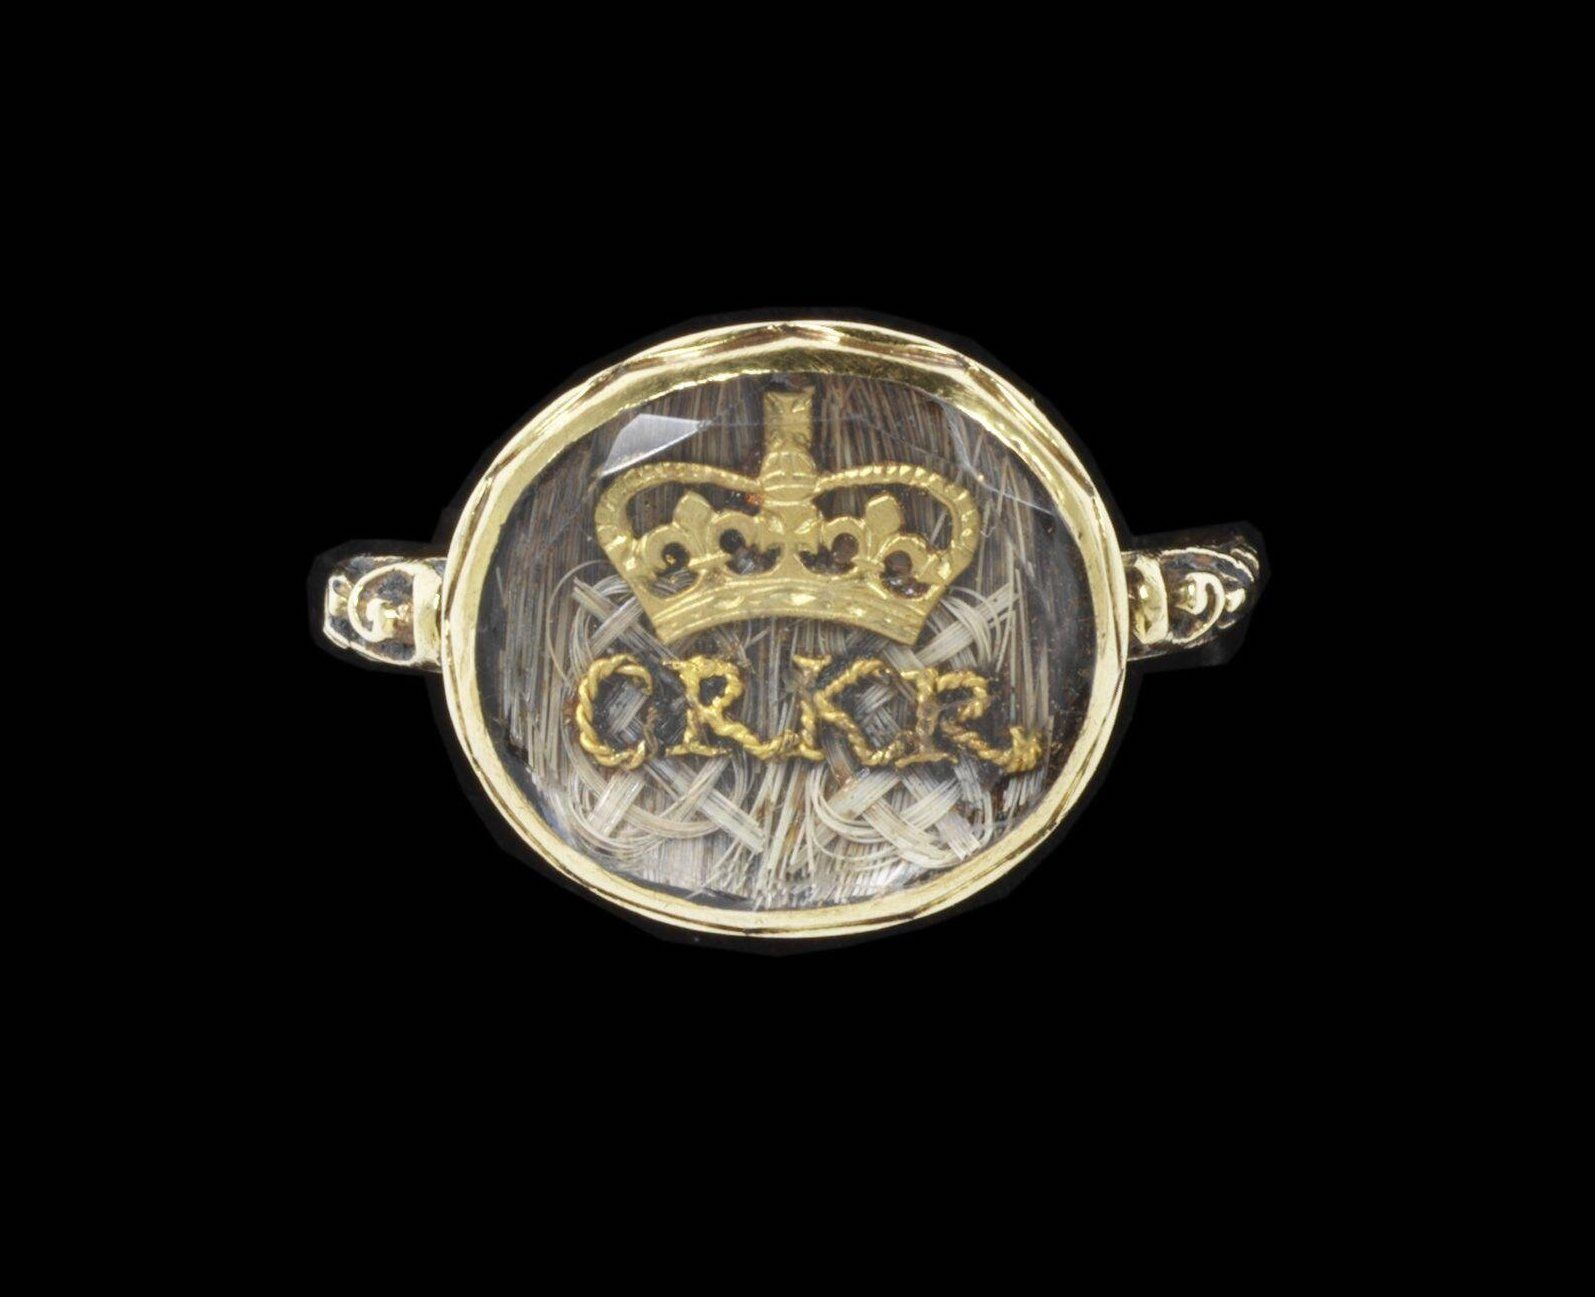 """Ring, 1685-1705, in the collection of the V&A Museum. """"CR"""" stands for """"Charles Rex."""" Rex=King."""